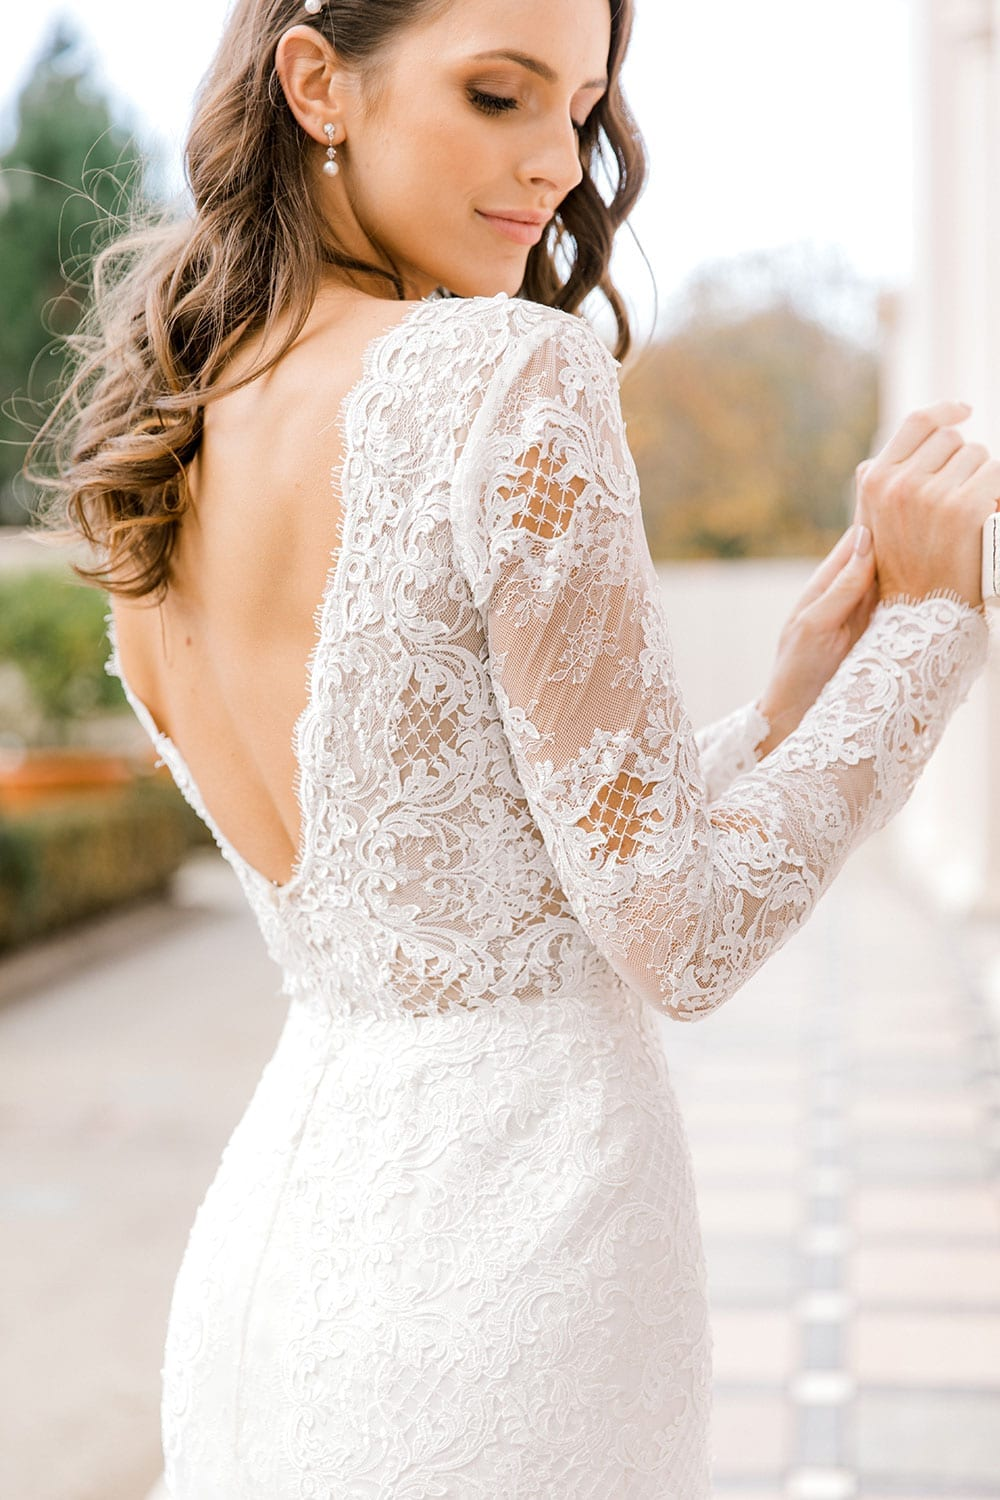 Model wearing Vinka Design Nadene Wedding Dress, a Long Sleeve Lace Wedding Gown outside old building with beautiful garden close up facing away